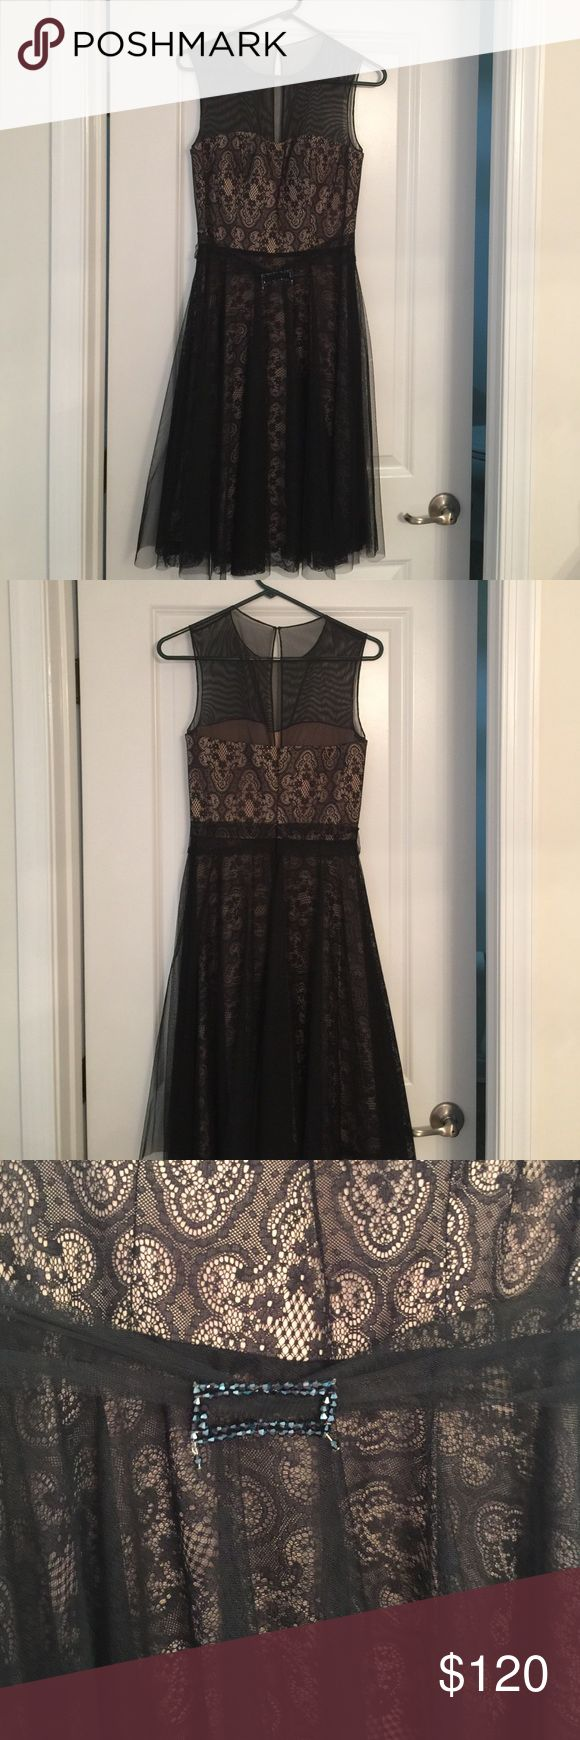 Black and nude cocktail dress. Nude colored cocktail dress with black sheer black tulle overlay. Perfect dress to wear to a wedding or evening event. JS Collections Dresses Midi